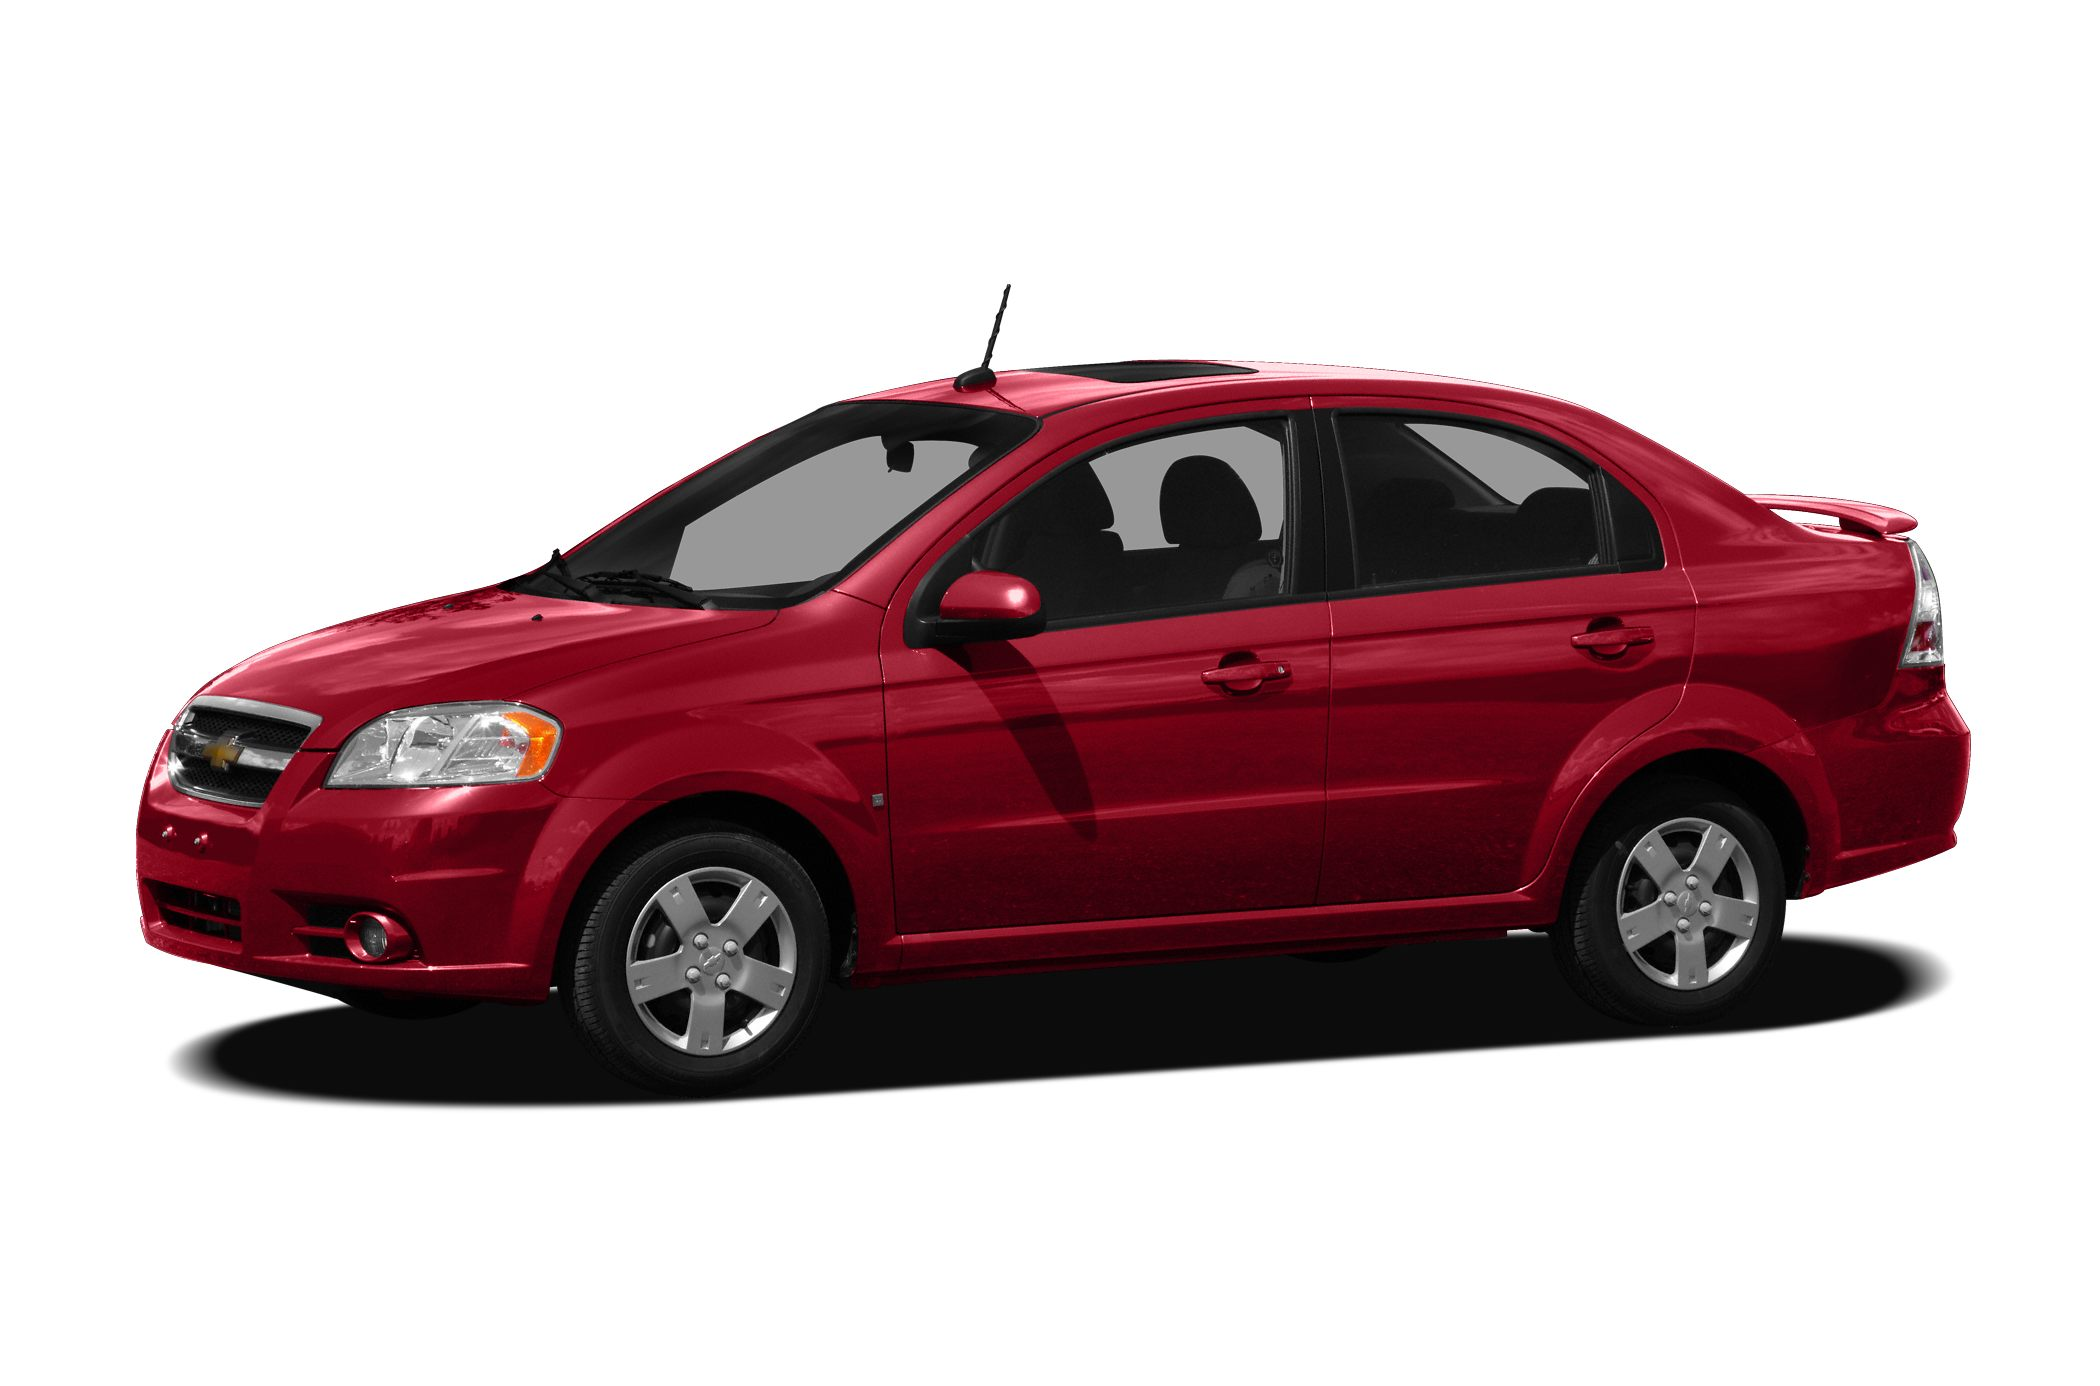 2011 Chevrolet Aveo LT Sedan for sale in Chicago for $8,795 with 66,100 miles